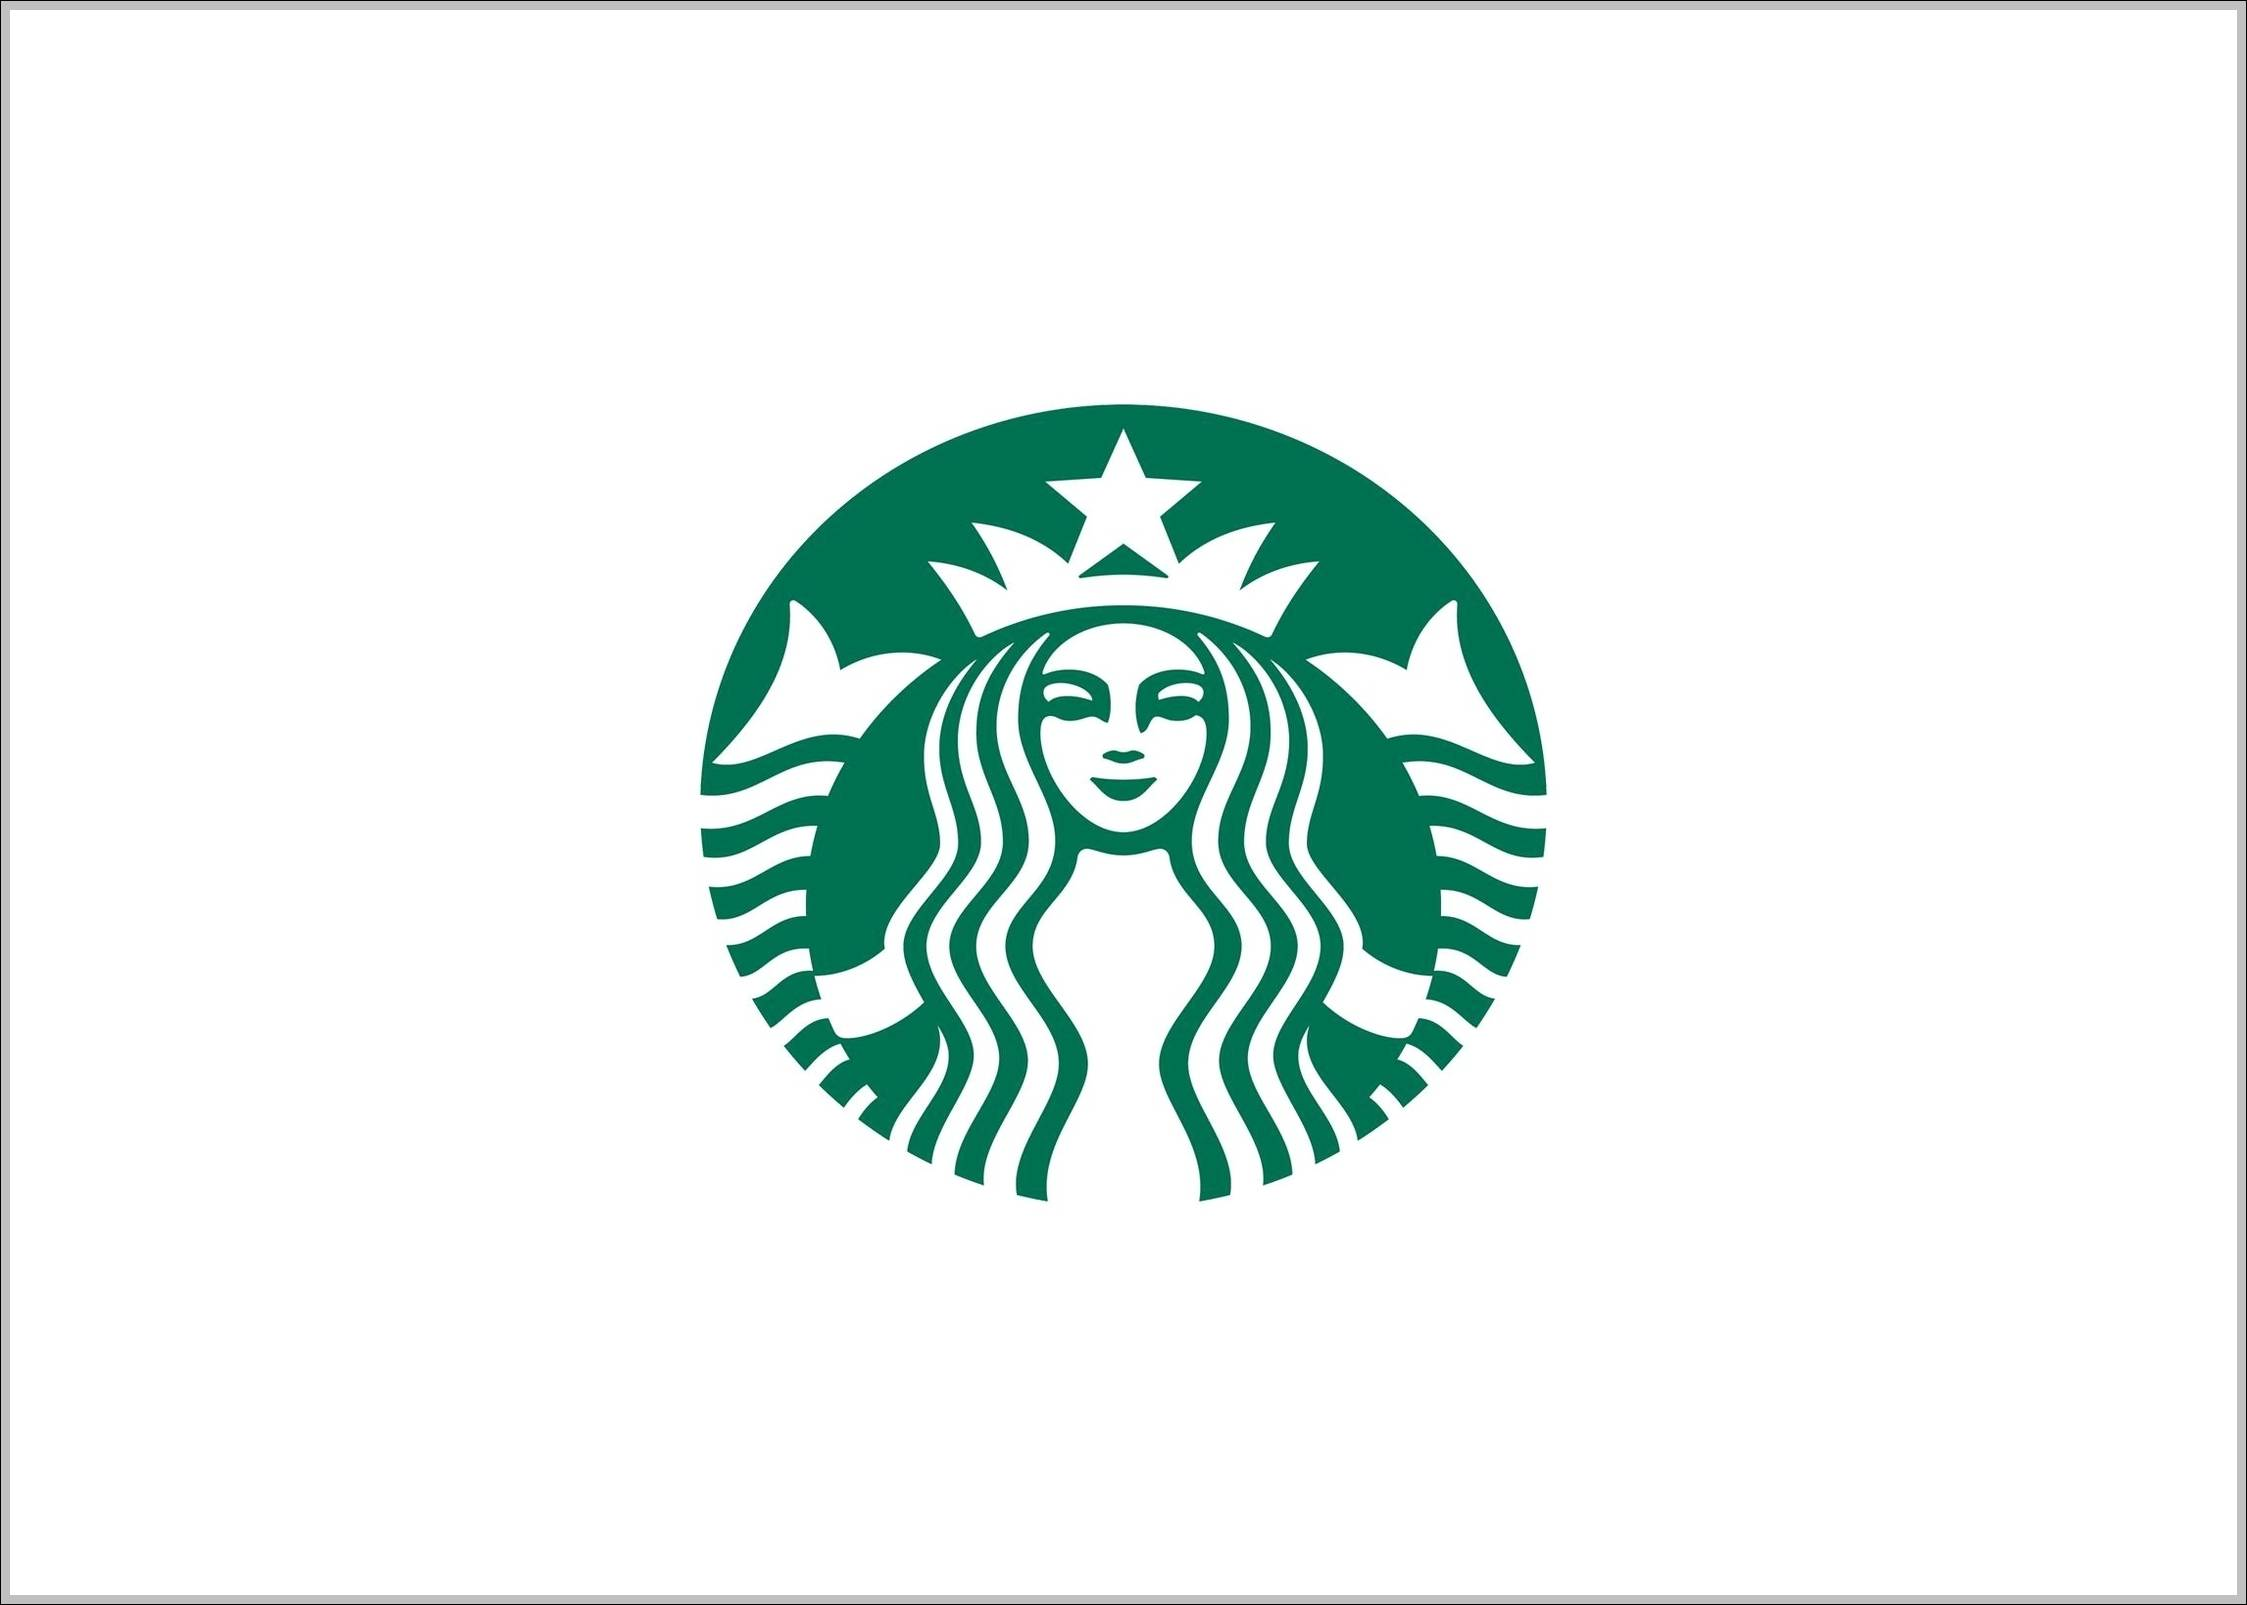 starbucks logos | Logo Sign - Logos, Signs, Symbols, Trademarks of ...